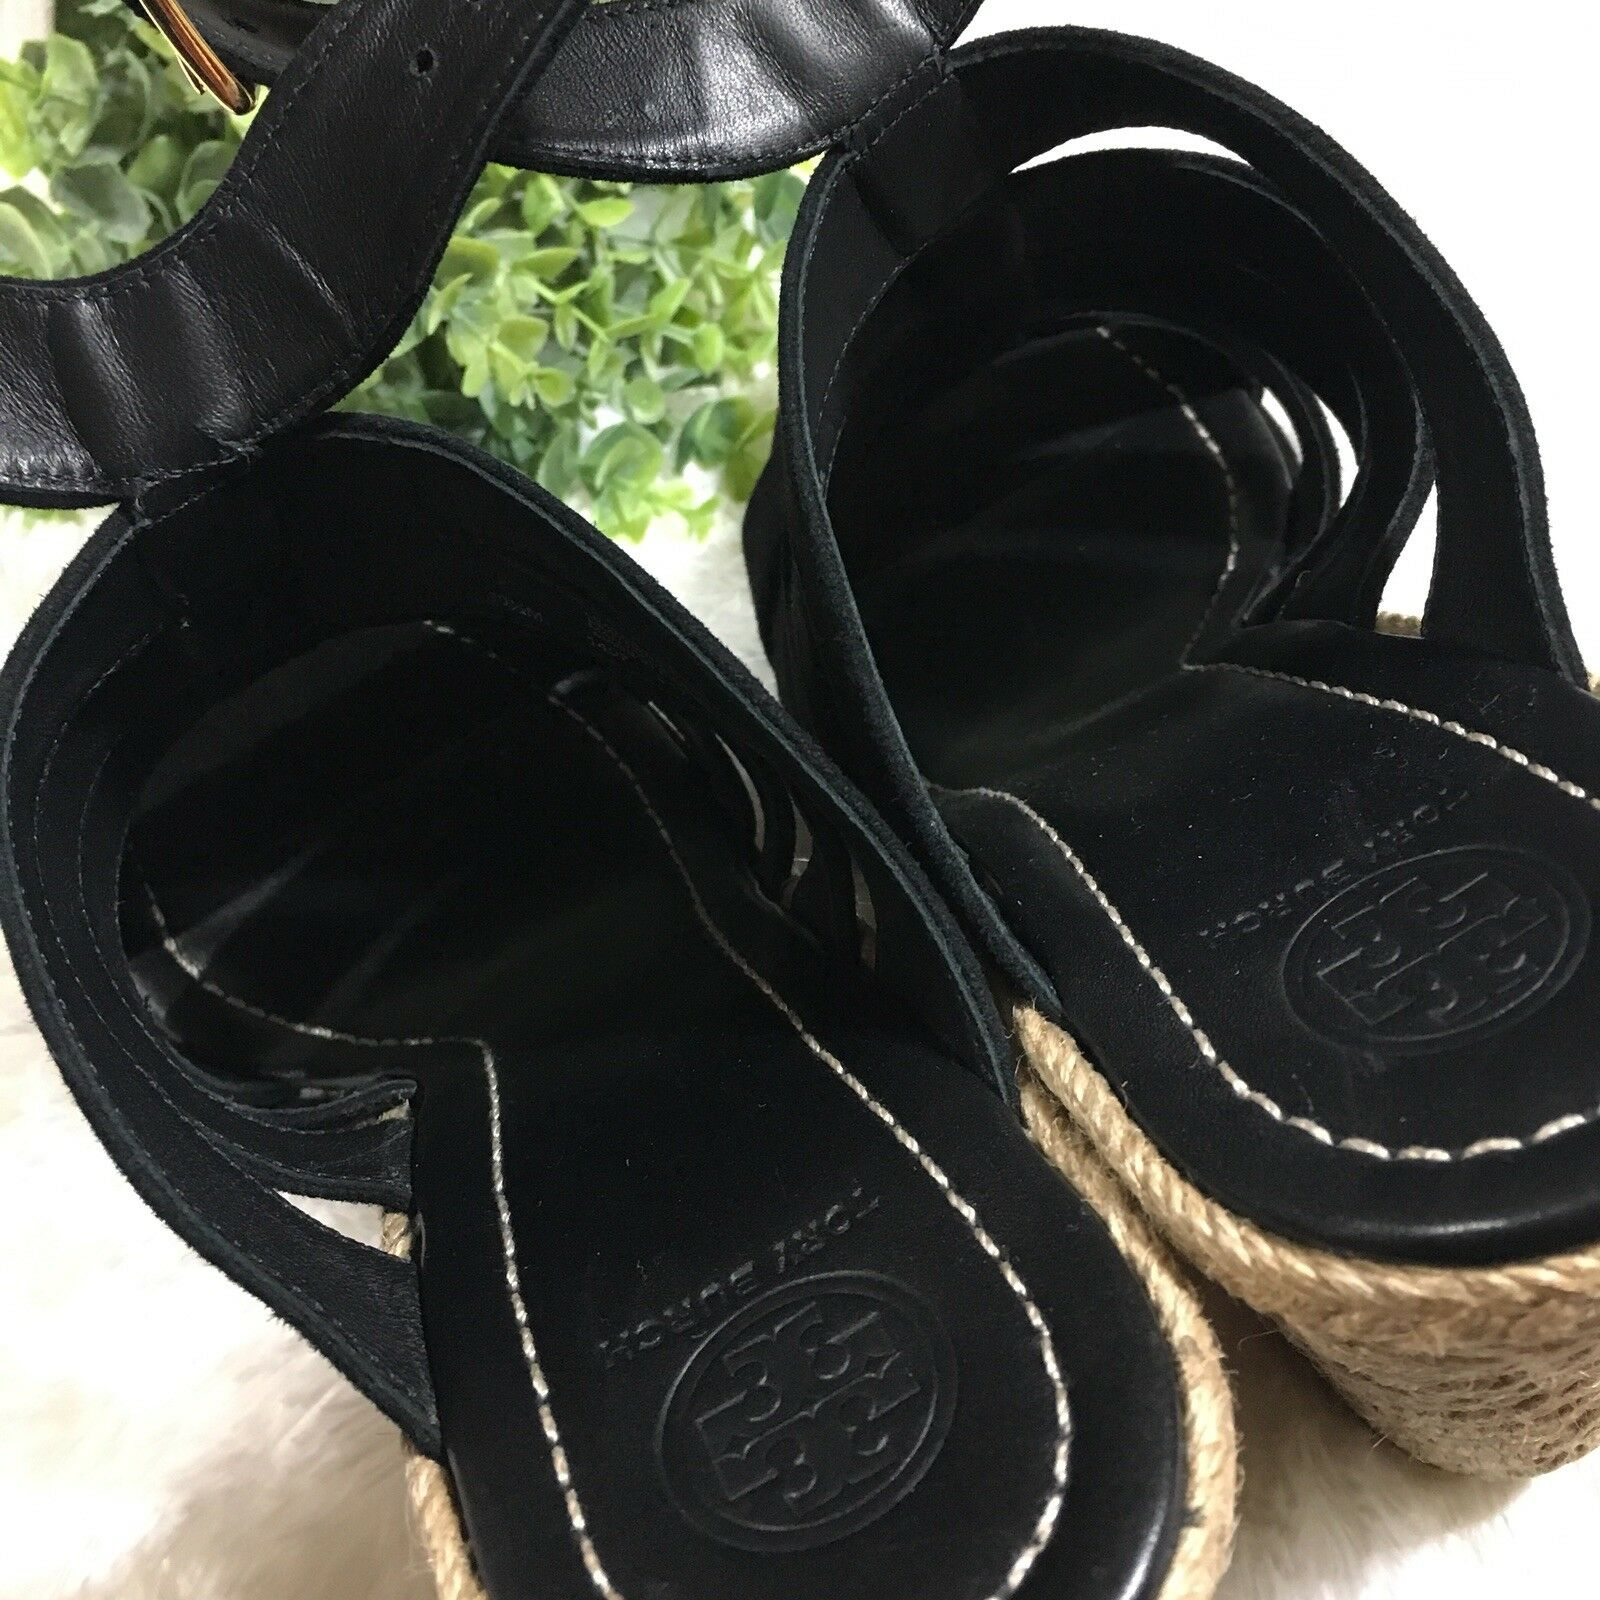 Tory Burch Bailey Multi Multi Multi Steal Wedge Espadrille Sandals Dimensione 10.5 Retail  358 5d9a53